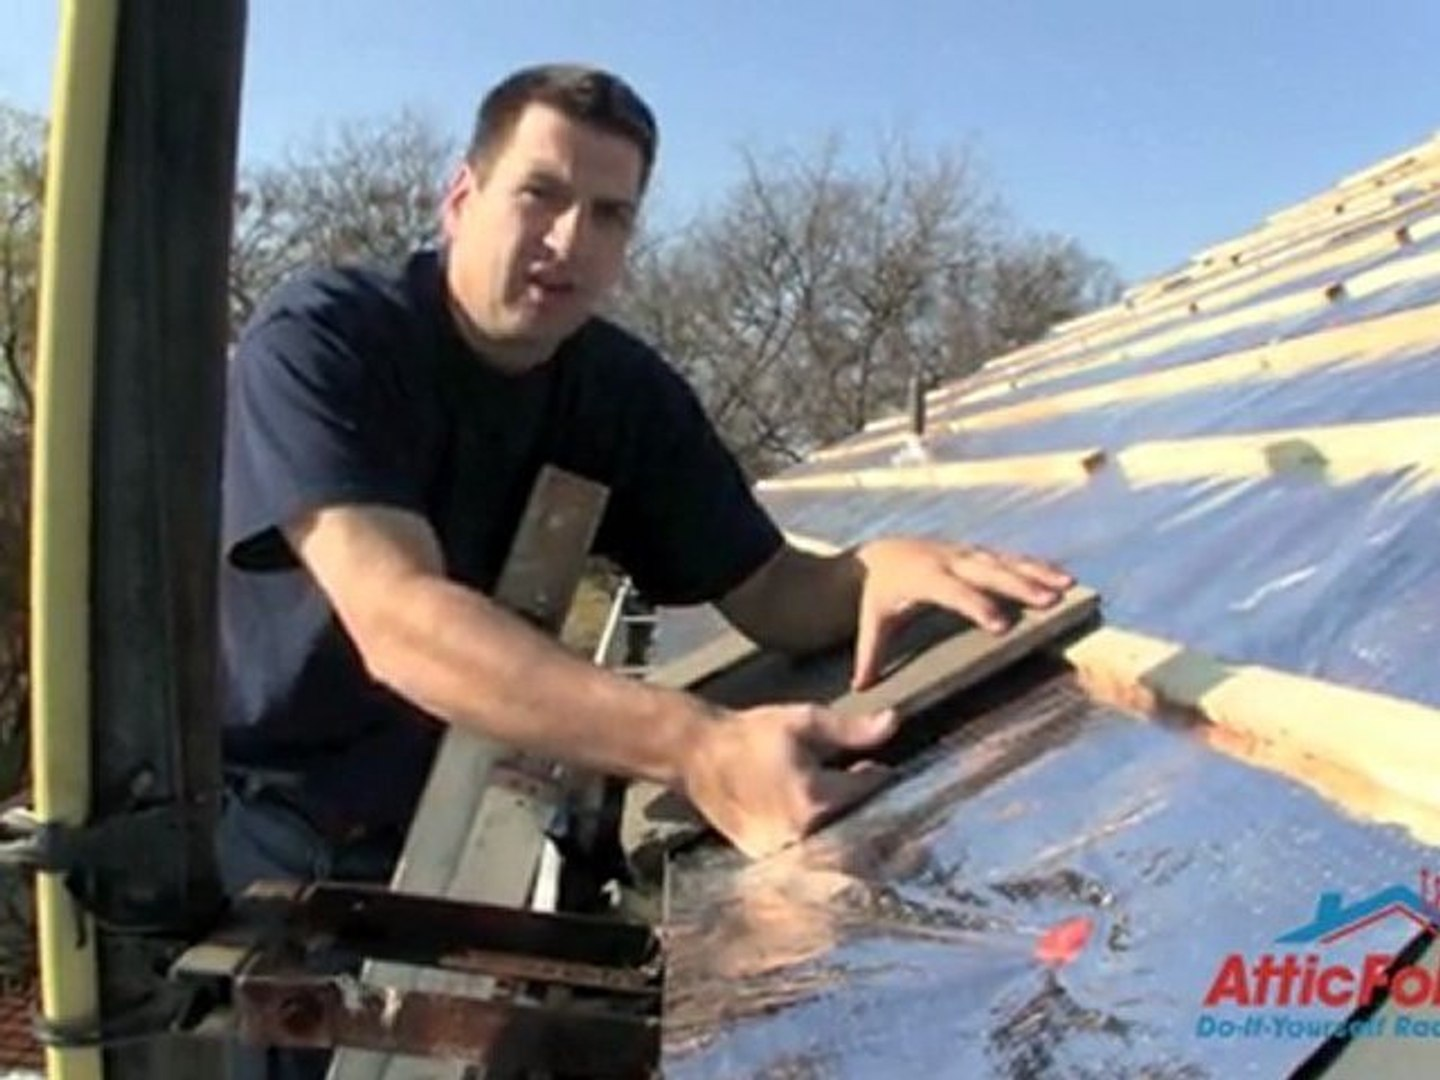 How To Install Atticfoil Radiant Barrier Foil Insulation Under Metal Tile Or Concrete Roofing Systems Video Dailymotion